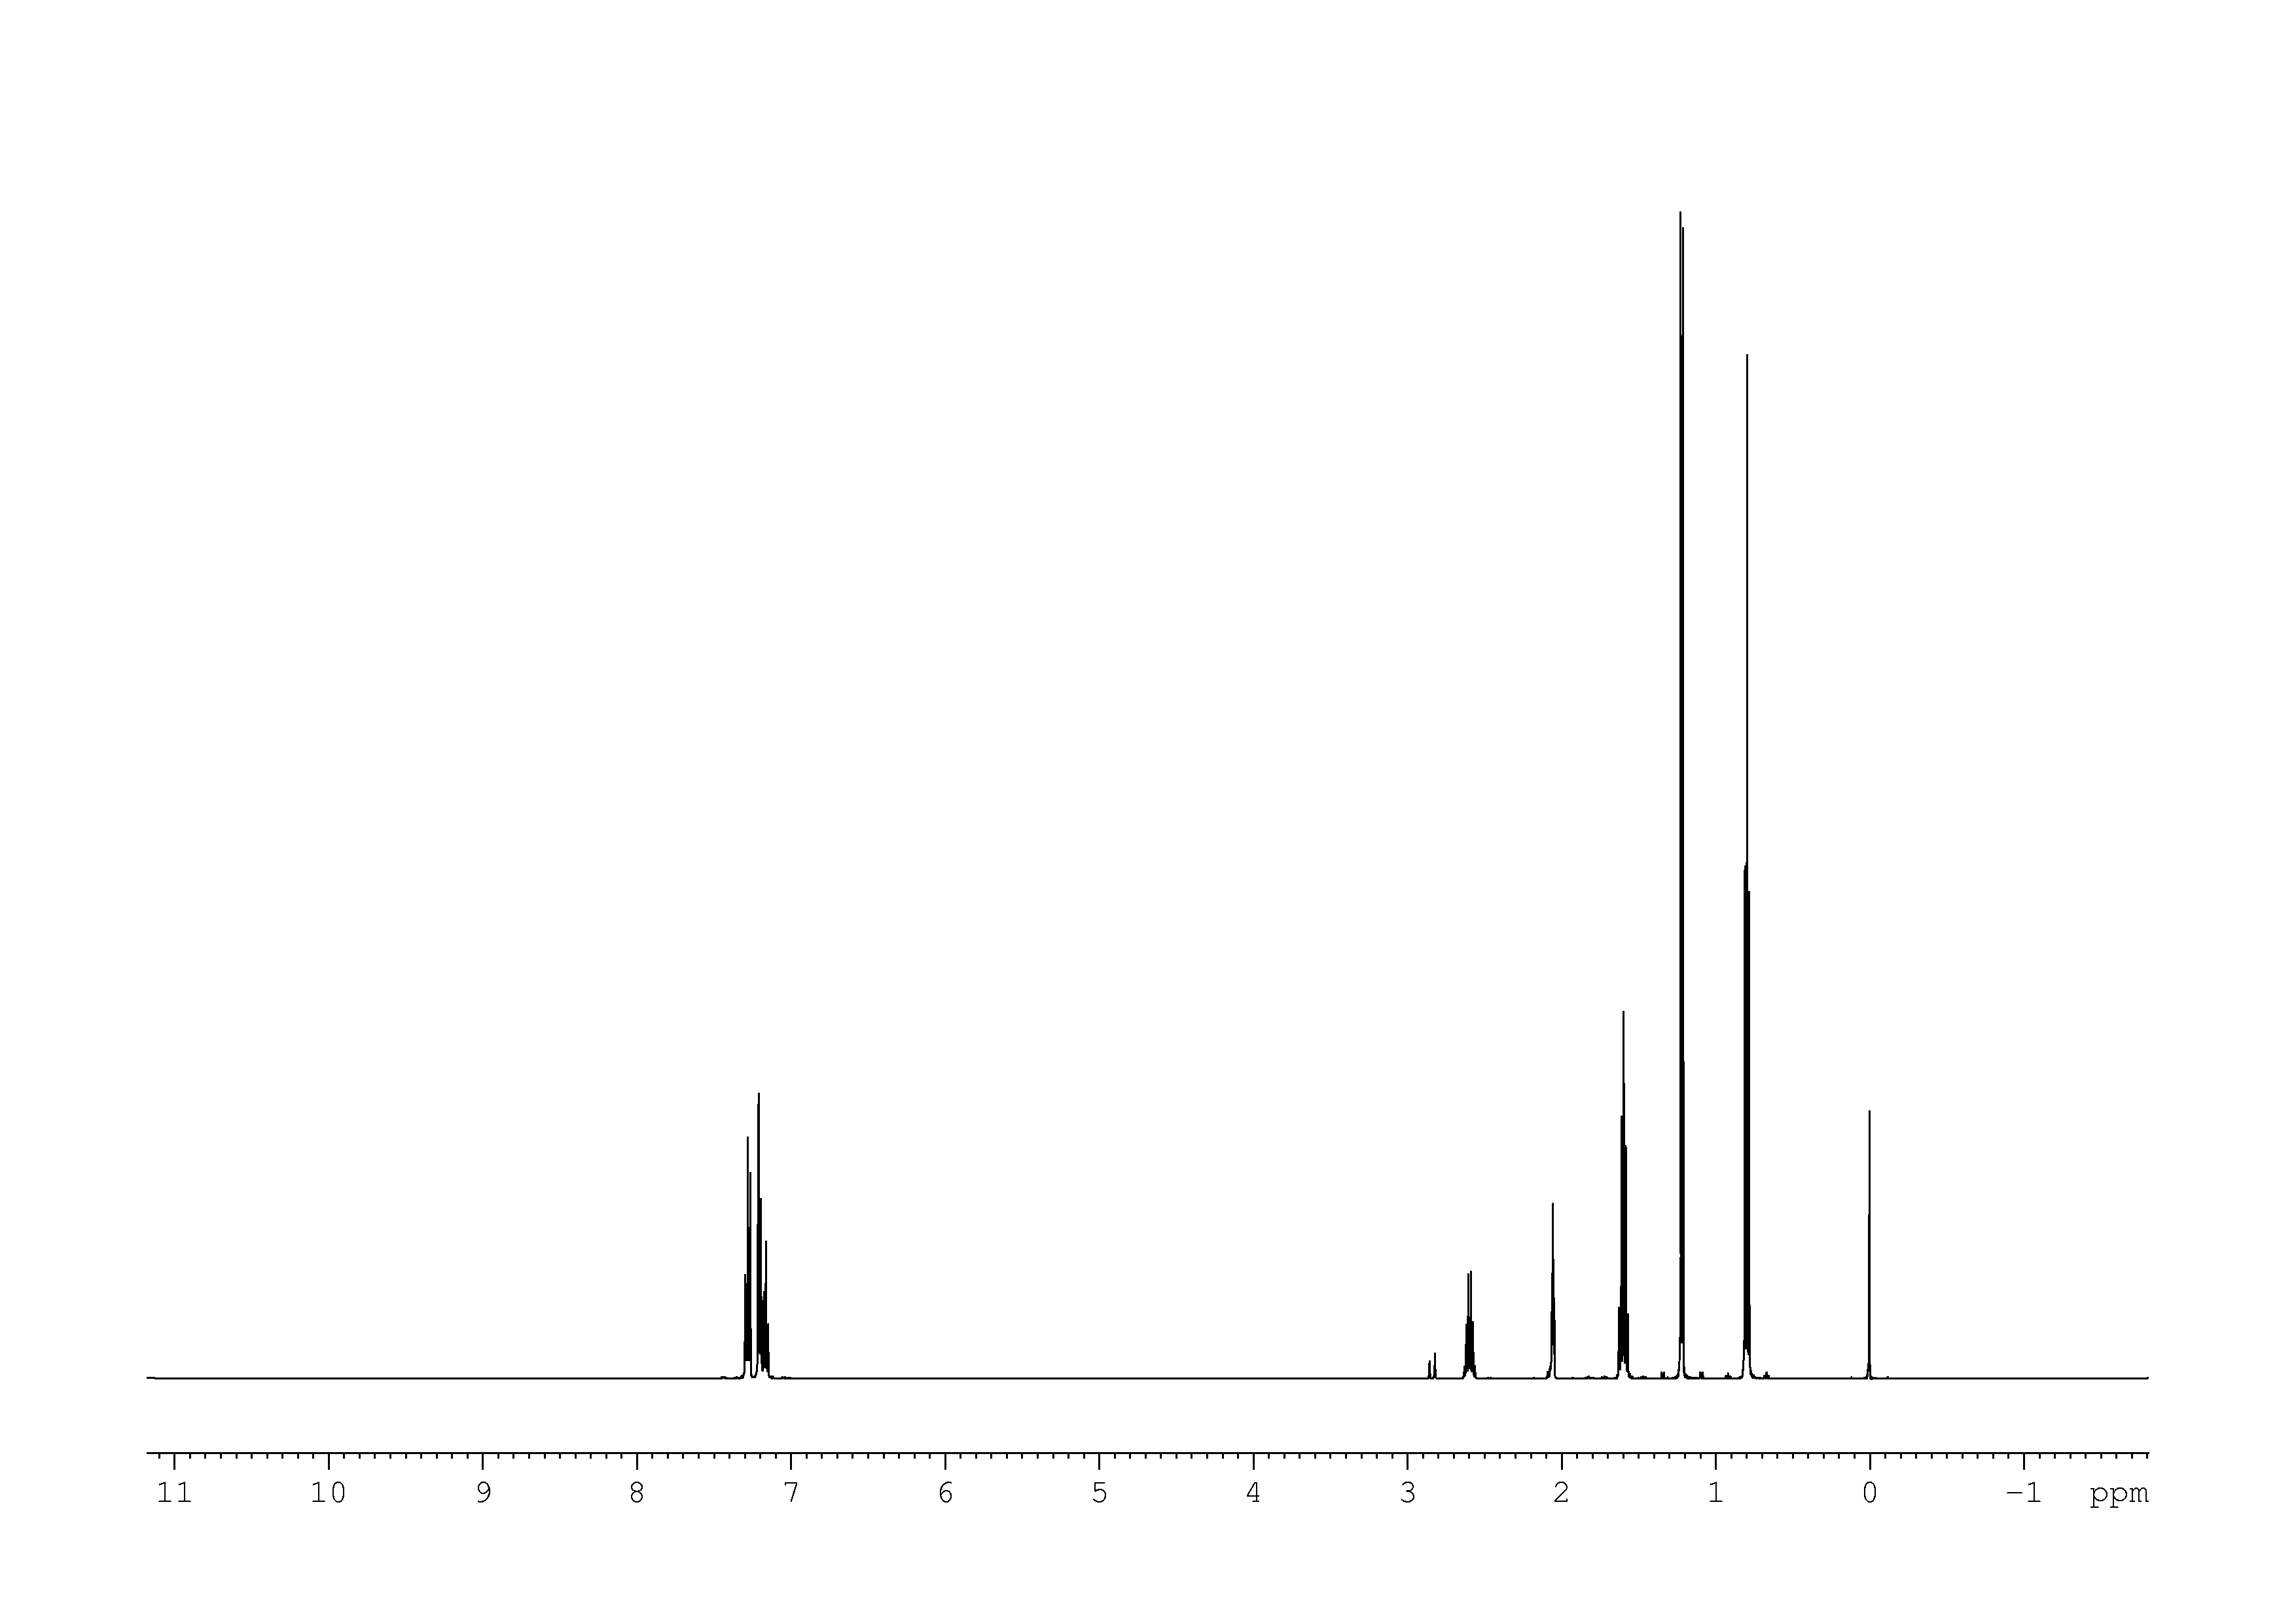 1D 1H, n/a spectrum for sec-butylbenzene